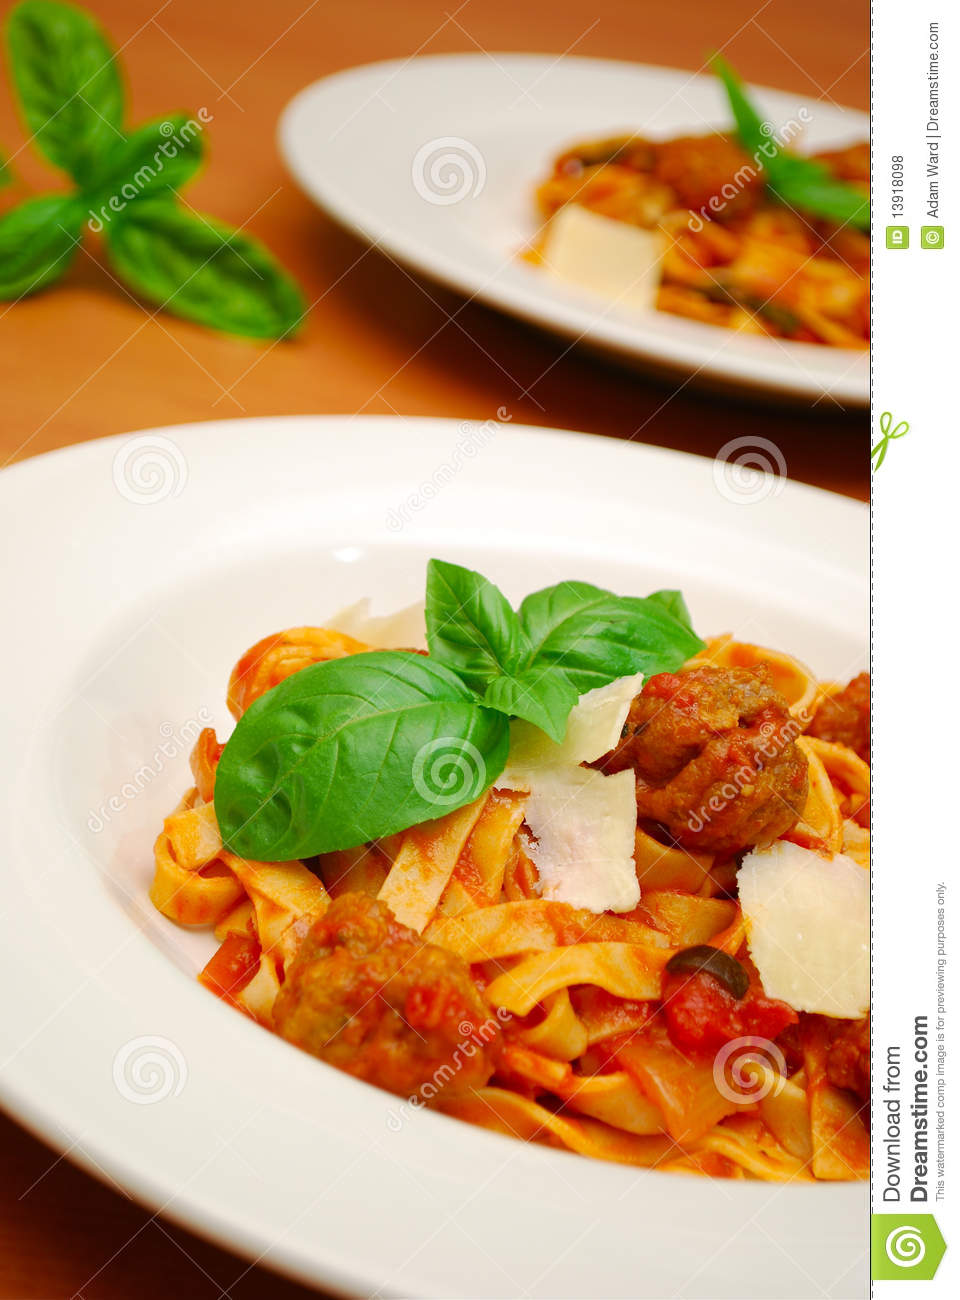 Italian Food Clipart Images   Crazy Gallery